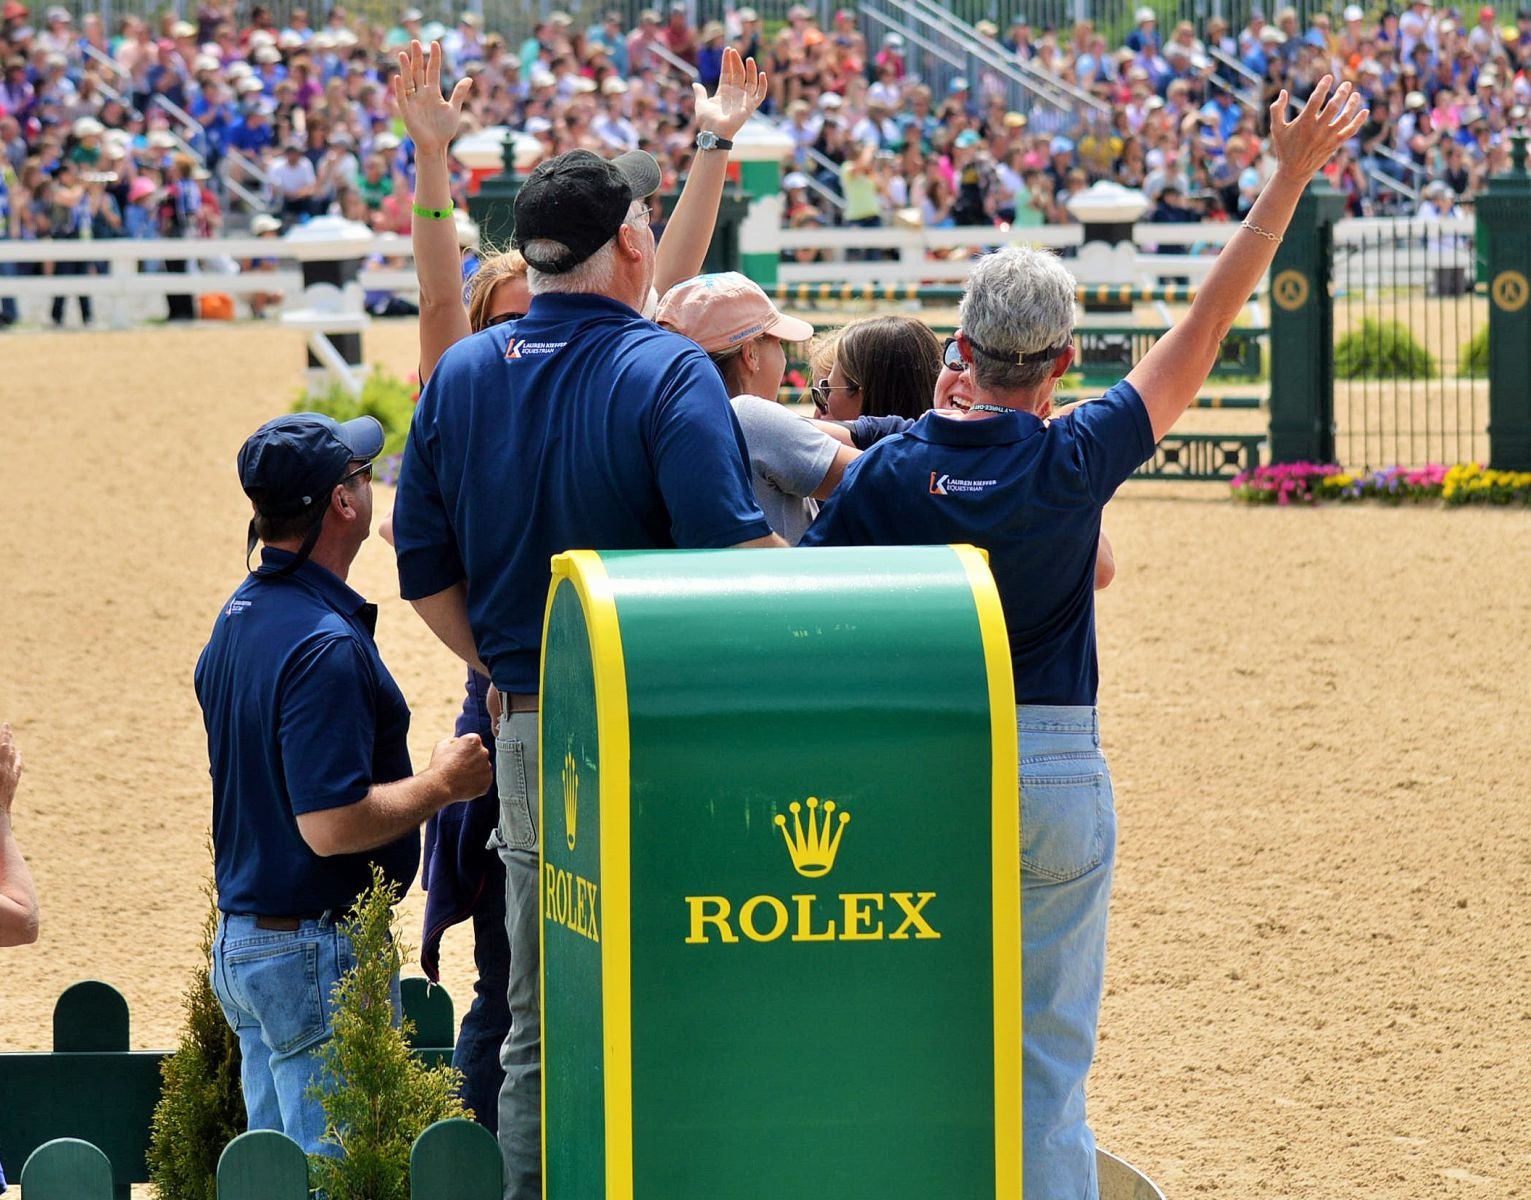 Lauren's cheering section after her clear round at Rolex with Veronica. Photo by Sally Spickard.